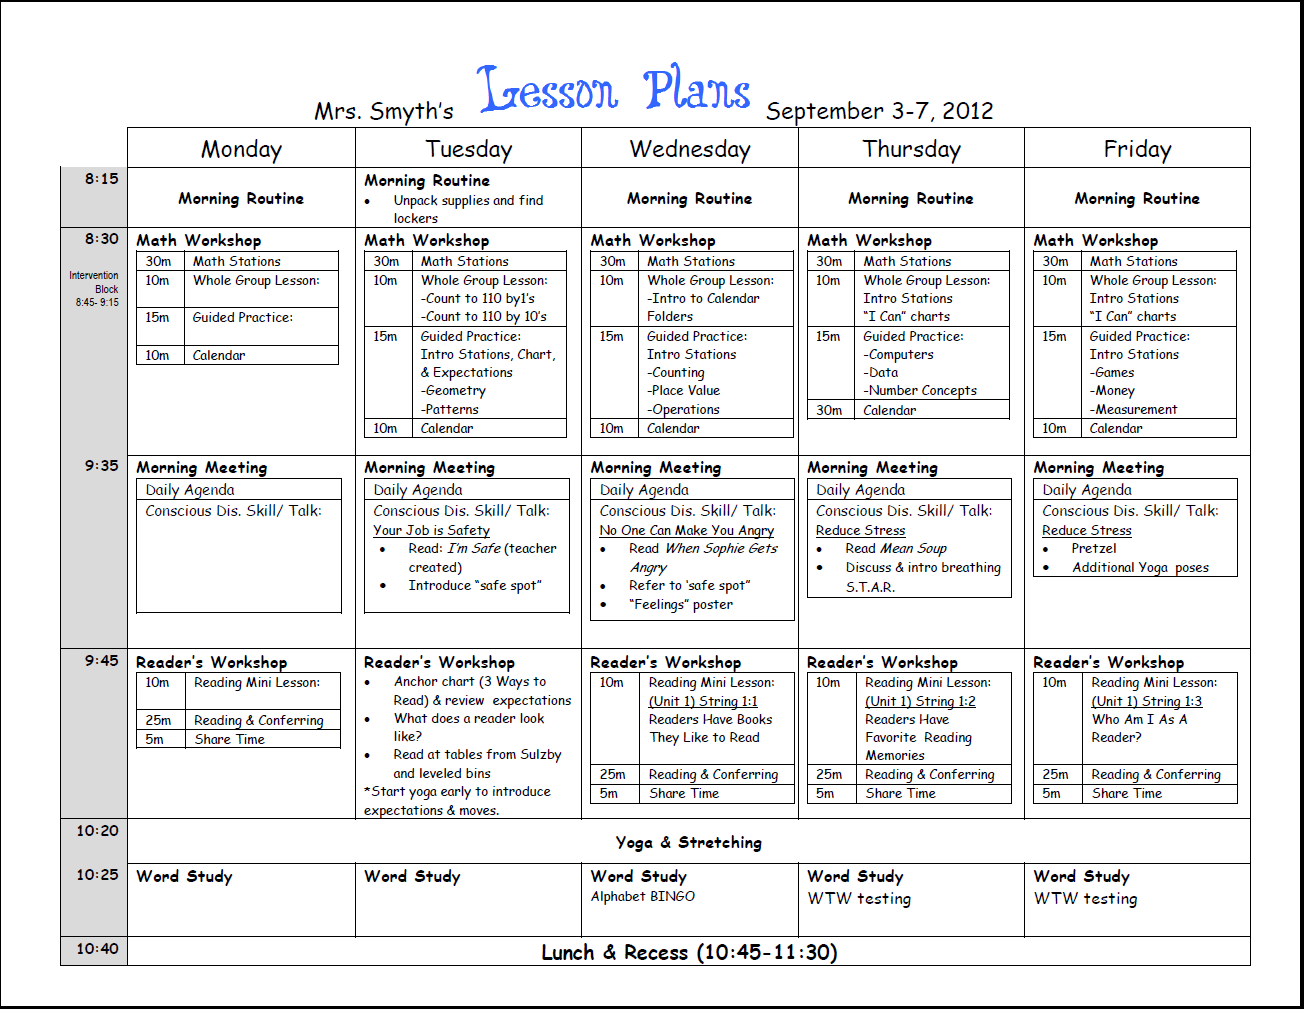 how to make a lesson plan template in word - free weekly lesson plan template and teacher resources